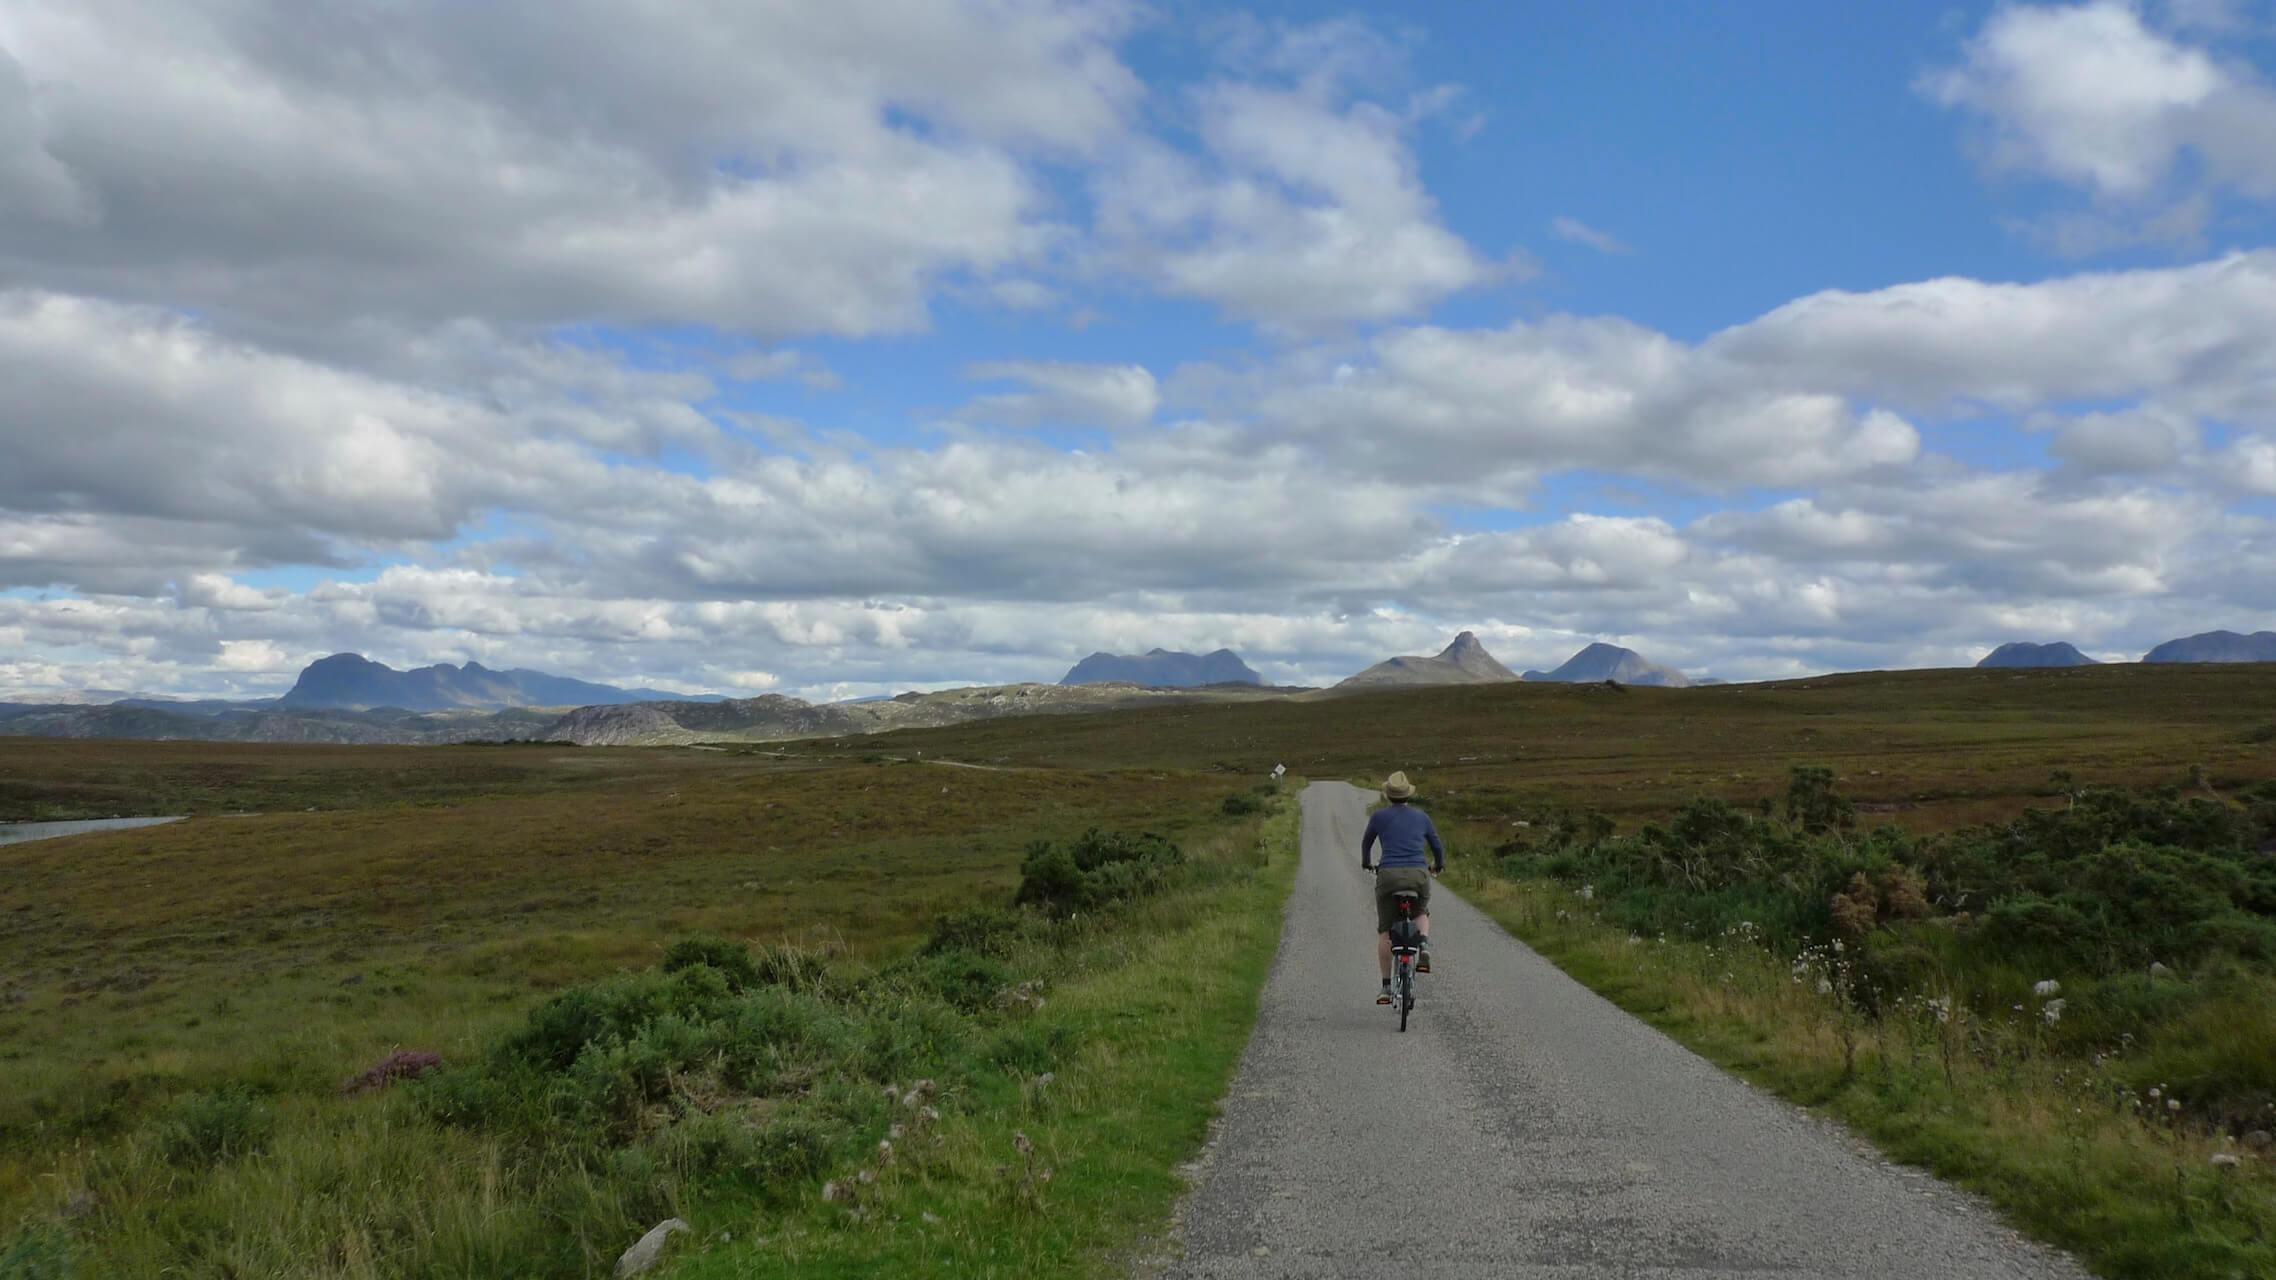 Folding bike on a single track road with mountains of Assynt in the background